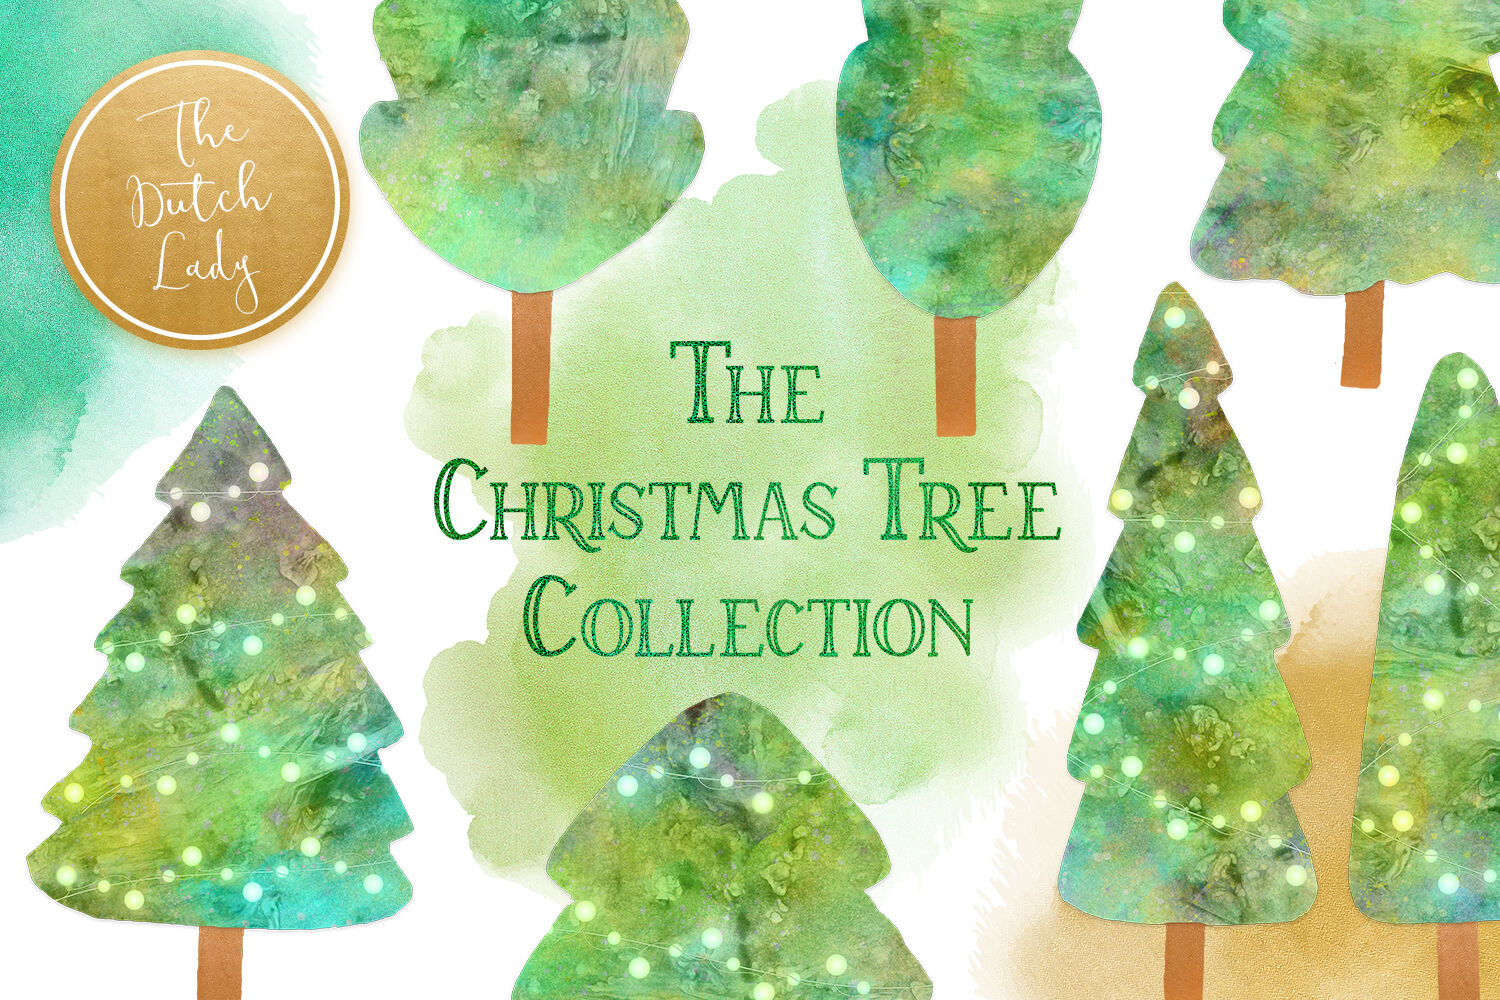 Christmas Tree Collection Clipart Set By The Dutch Lady Designs